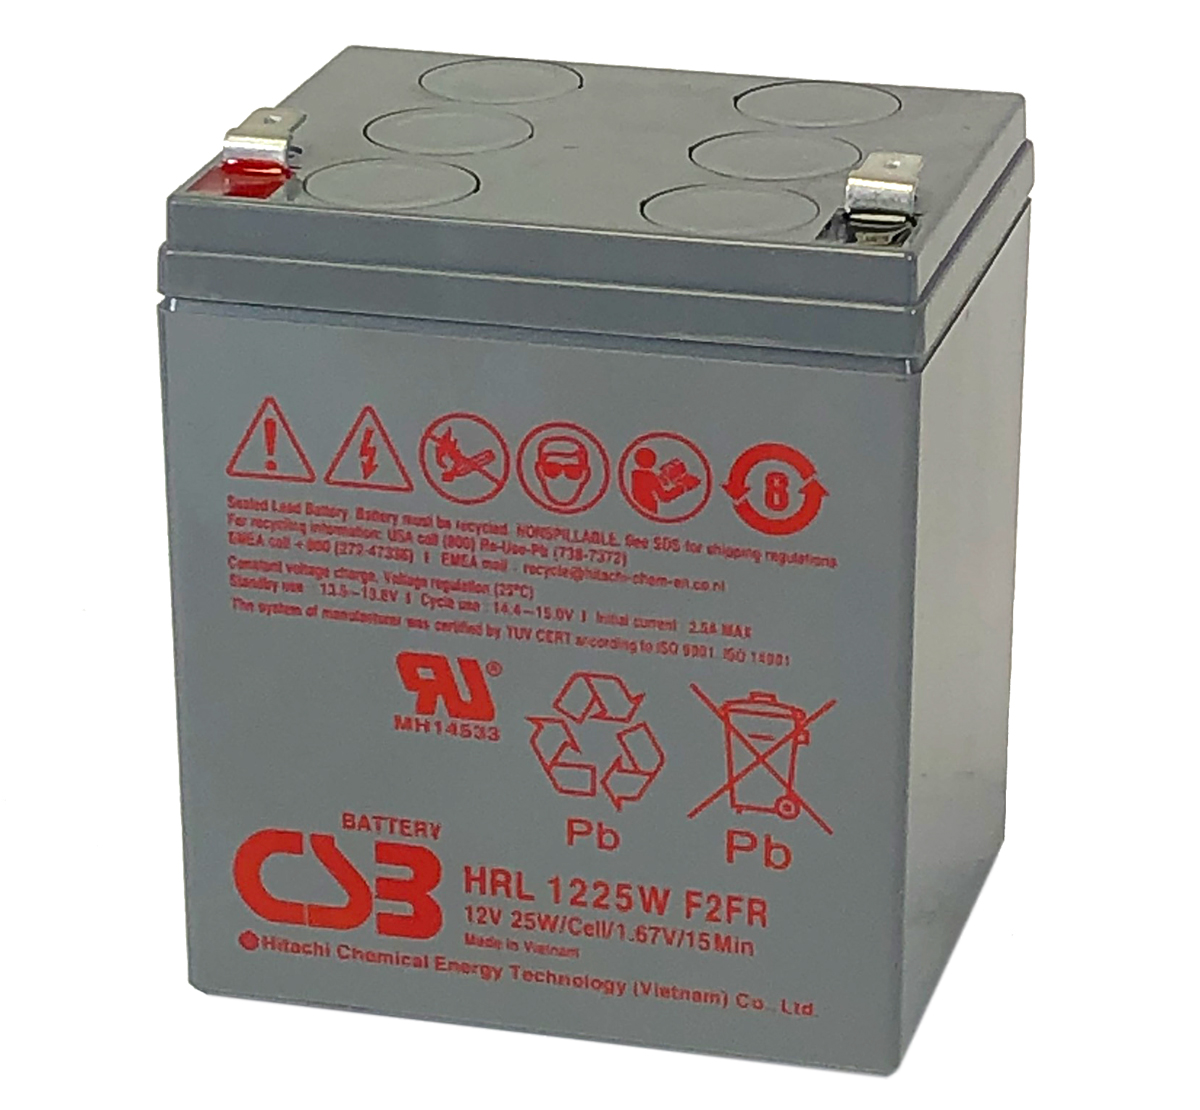 CSB HRL1225W 12V 25W Lead Acid Battery